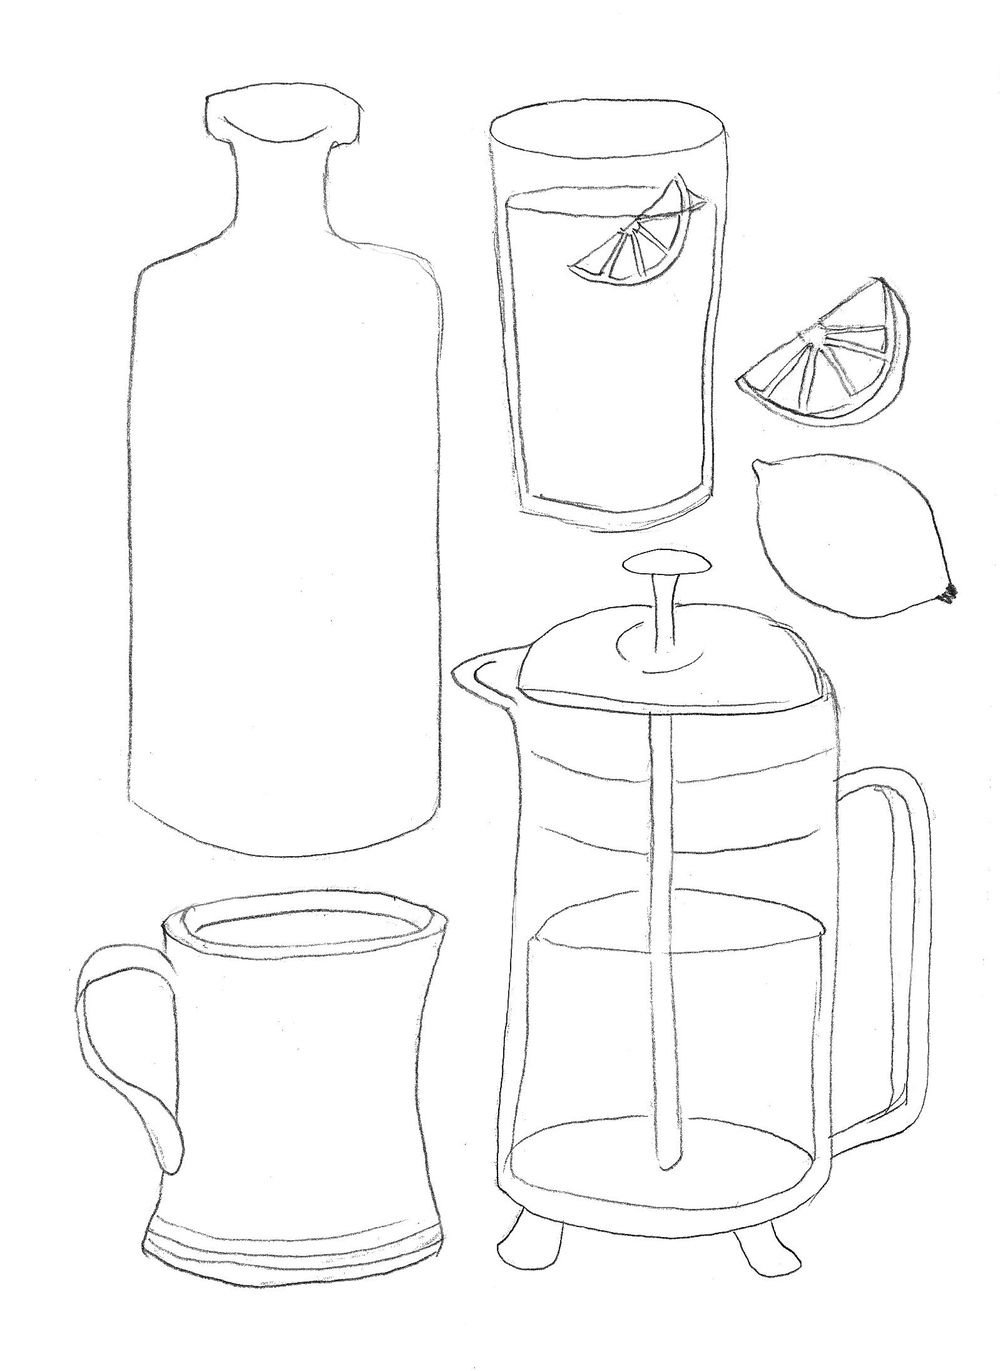 Tools of the Trade: Morning Ritual Essentials  - image 1 - student project